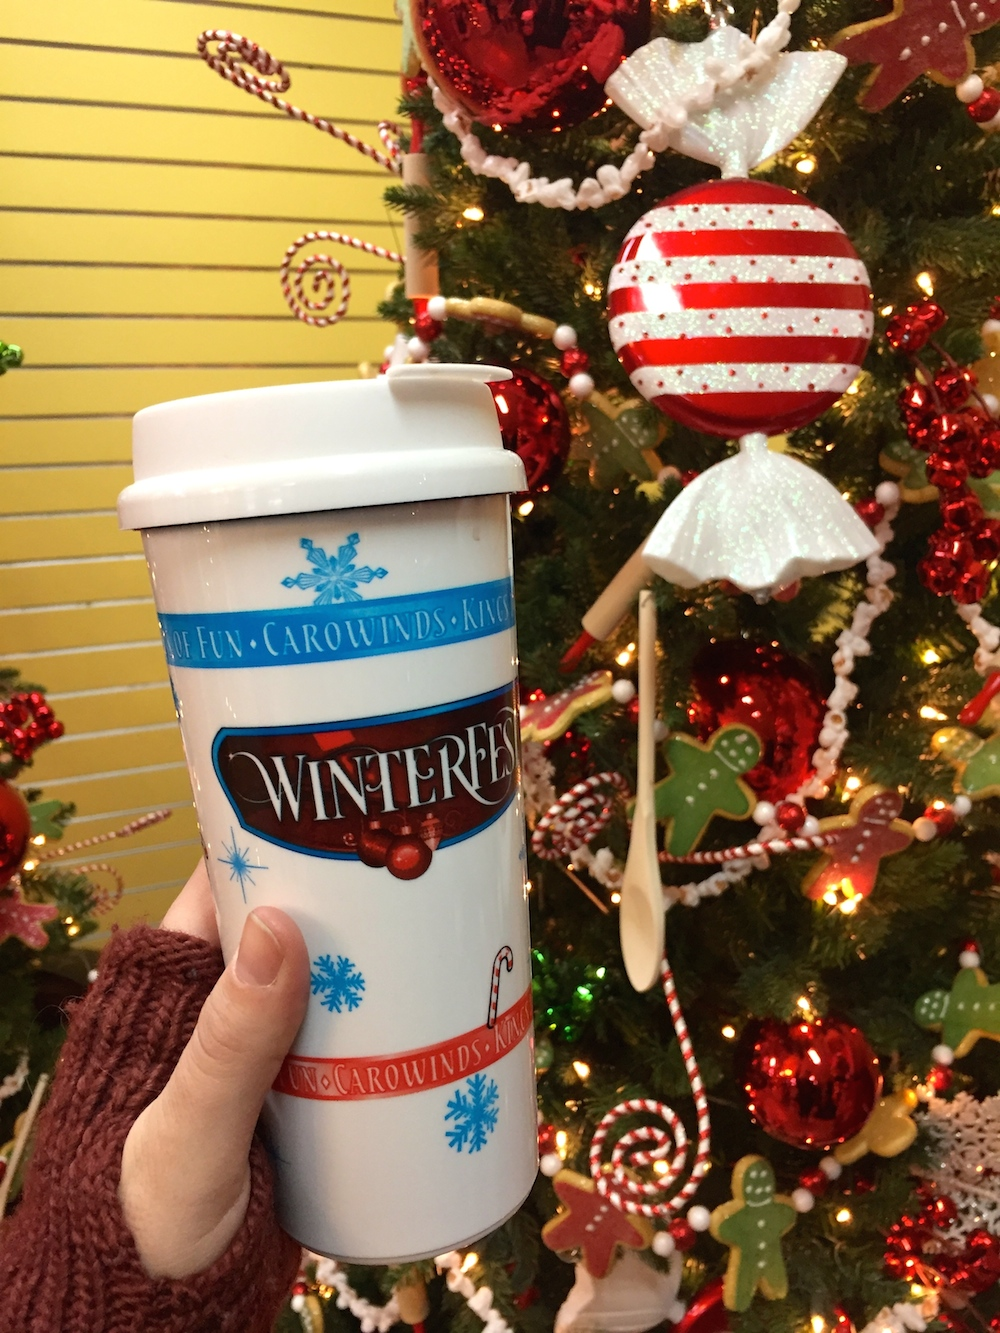 Souvenir hot chocolate mug at Worlds of Fun's WinterFest in Kansas City, Missouri